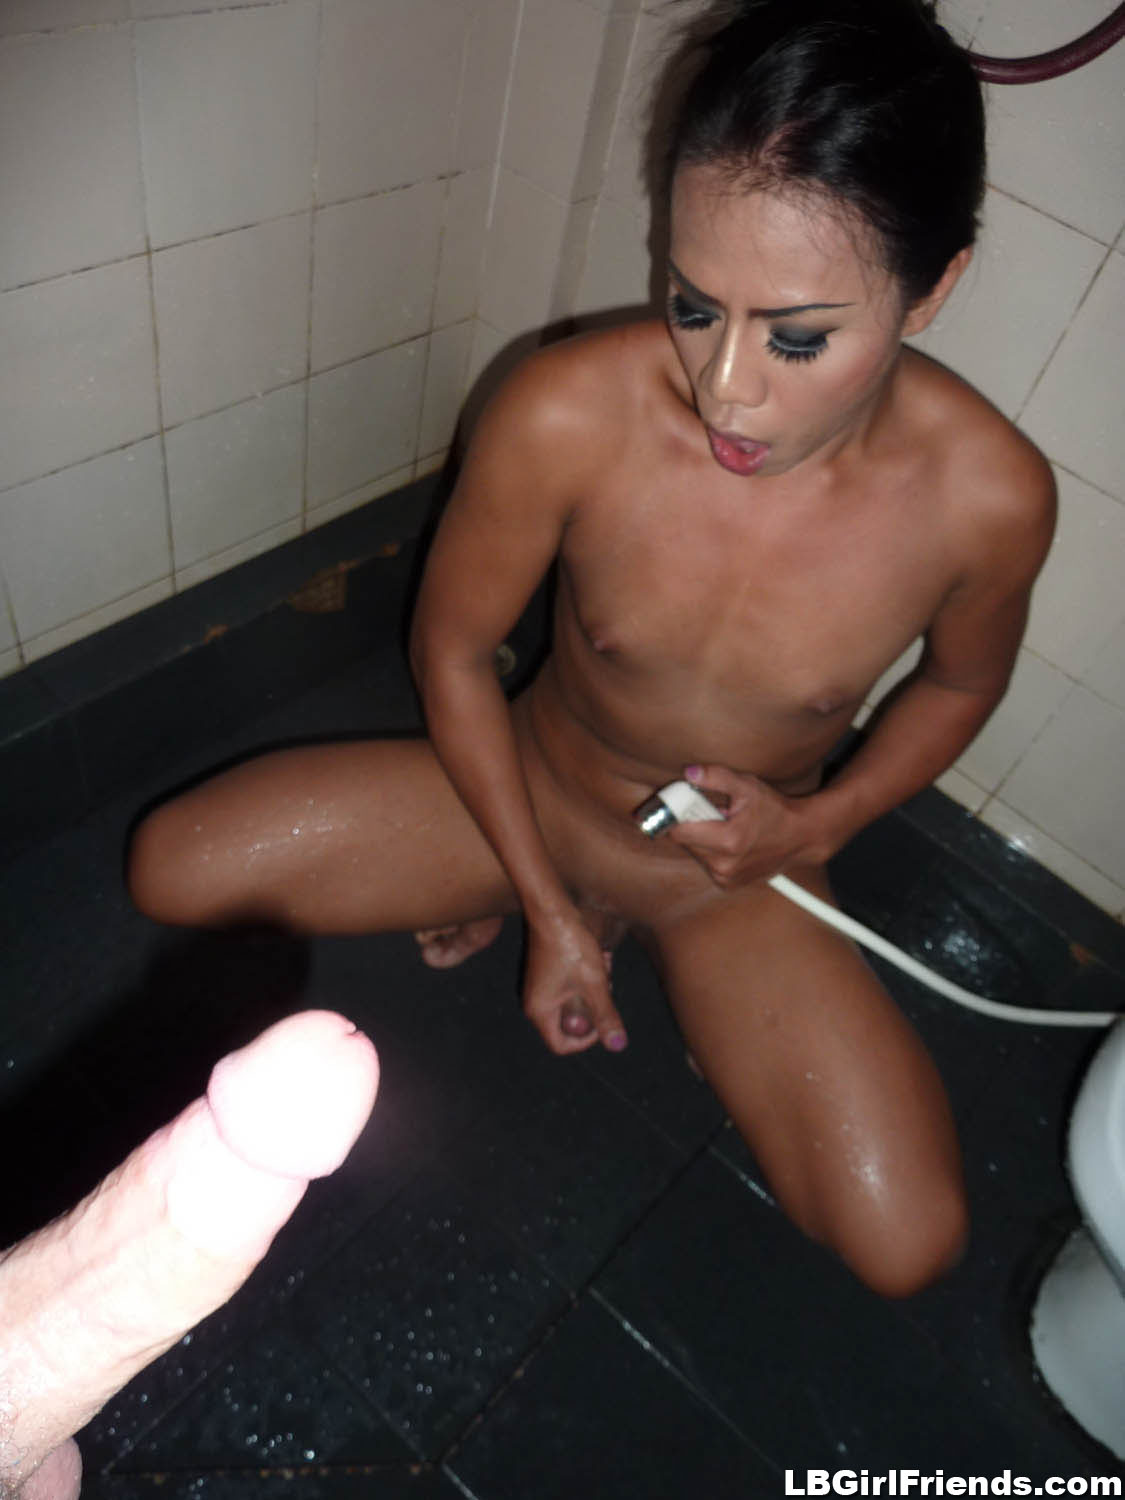 asian shemale condom - Ladyboy girlfriend fucked without condom